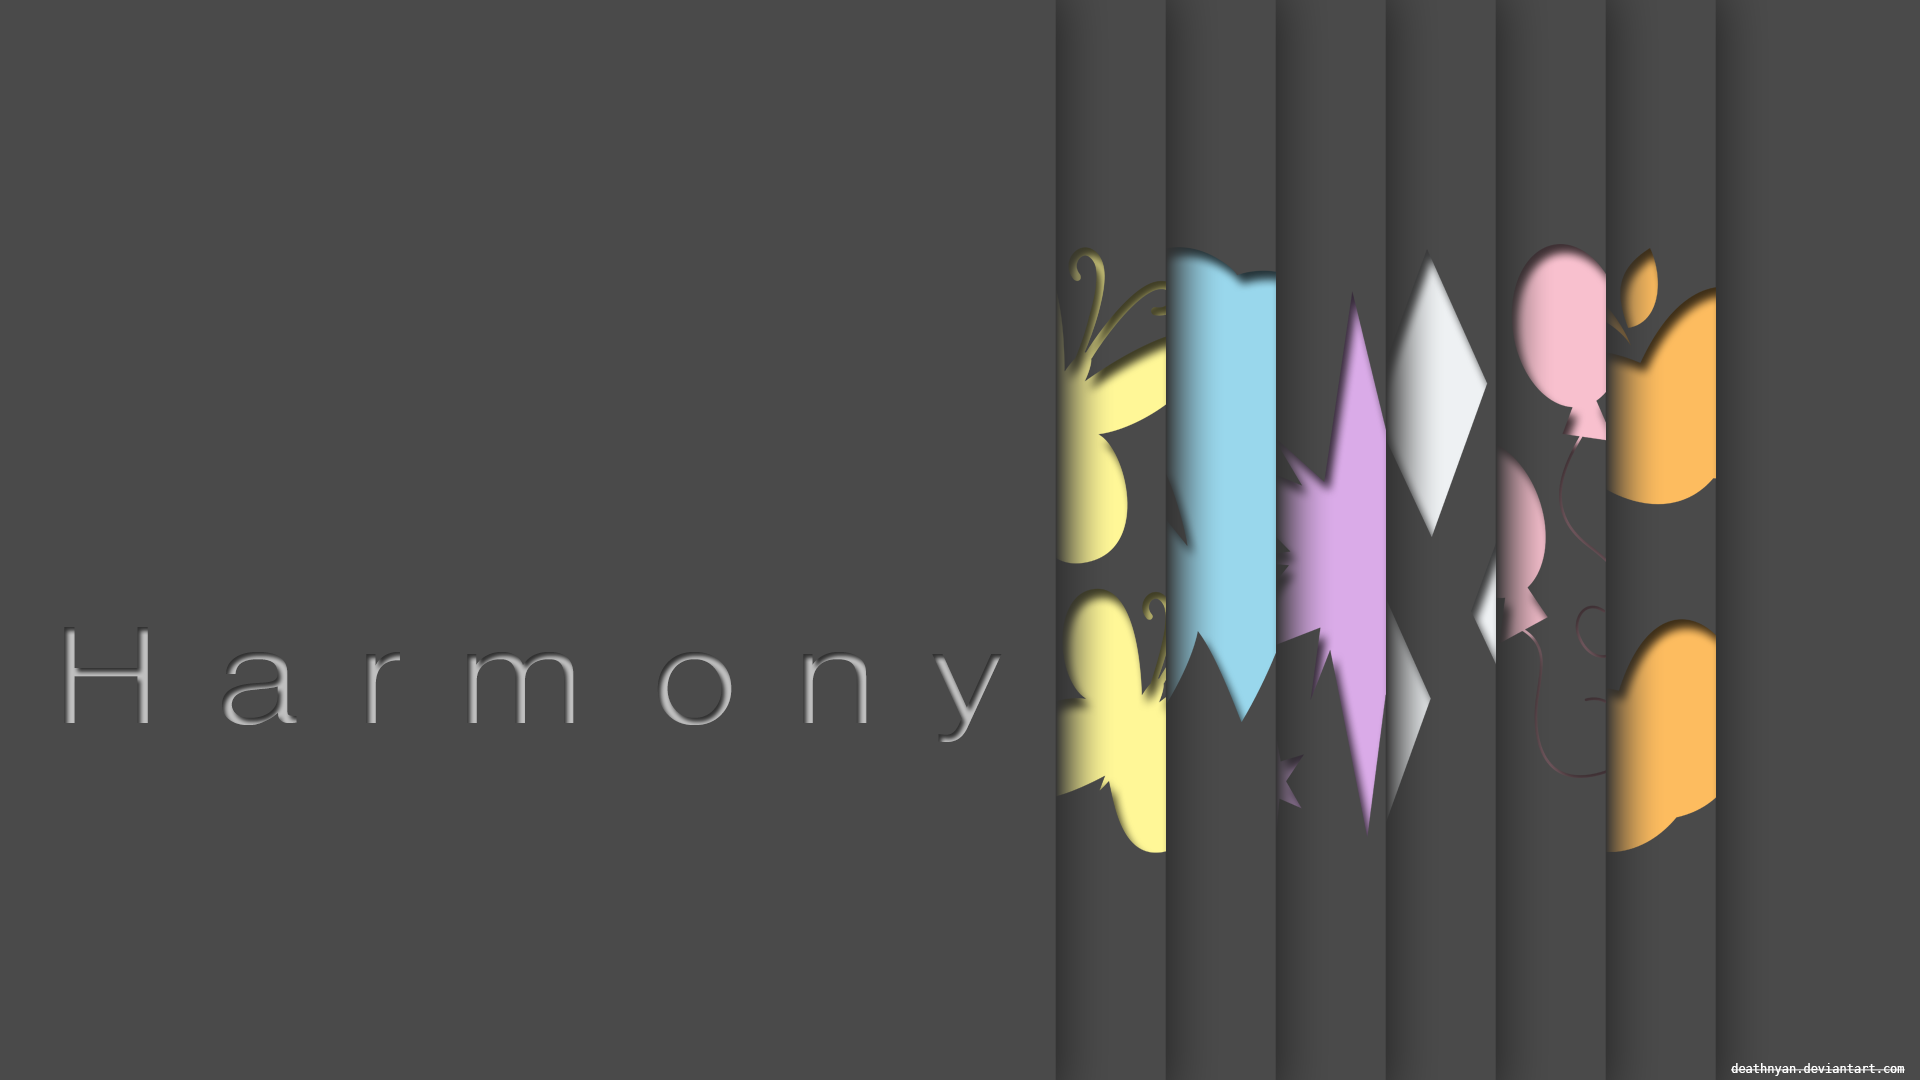 Harmony wallpaper minimalist dark v2 by deathnyan on for Deviantart minimal wallpaper